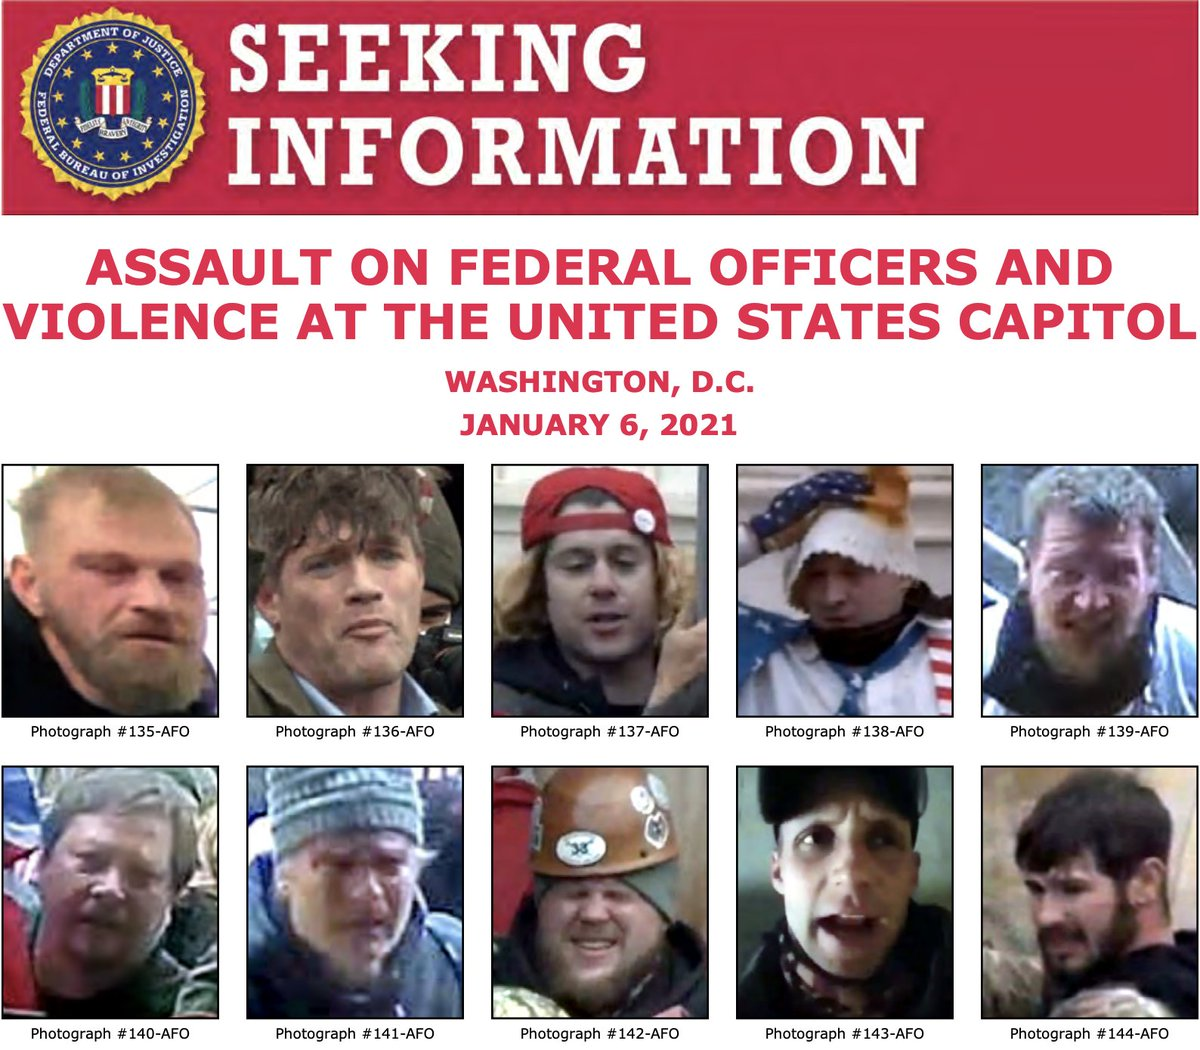 The #FBI has updated our website with more photos of individuals who unlawfully entered the U.S. Capitol on January 6 and assaulted federal law enforcement officers. Submit tips to help us identify them at . @FBIWFO